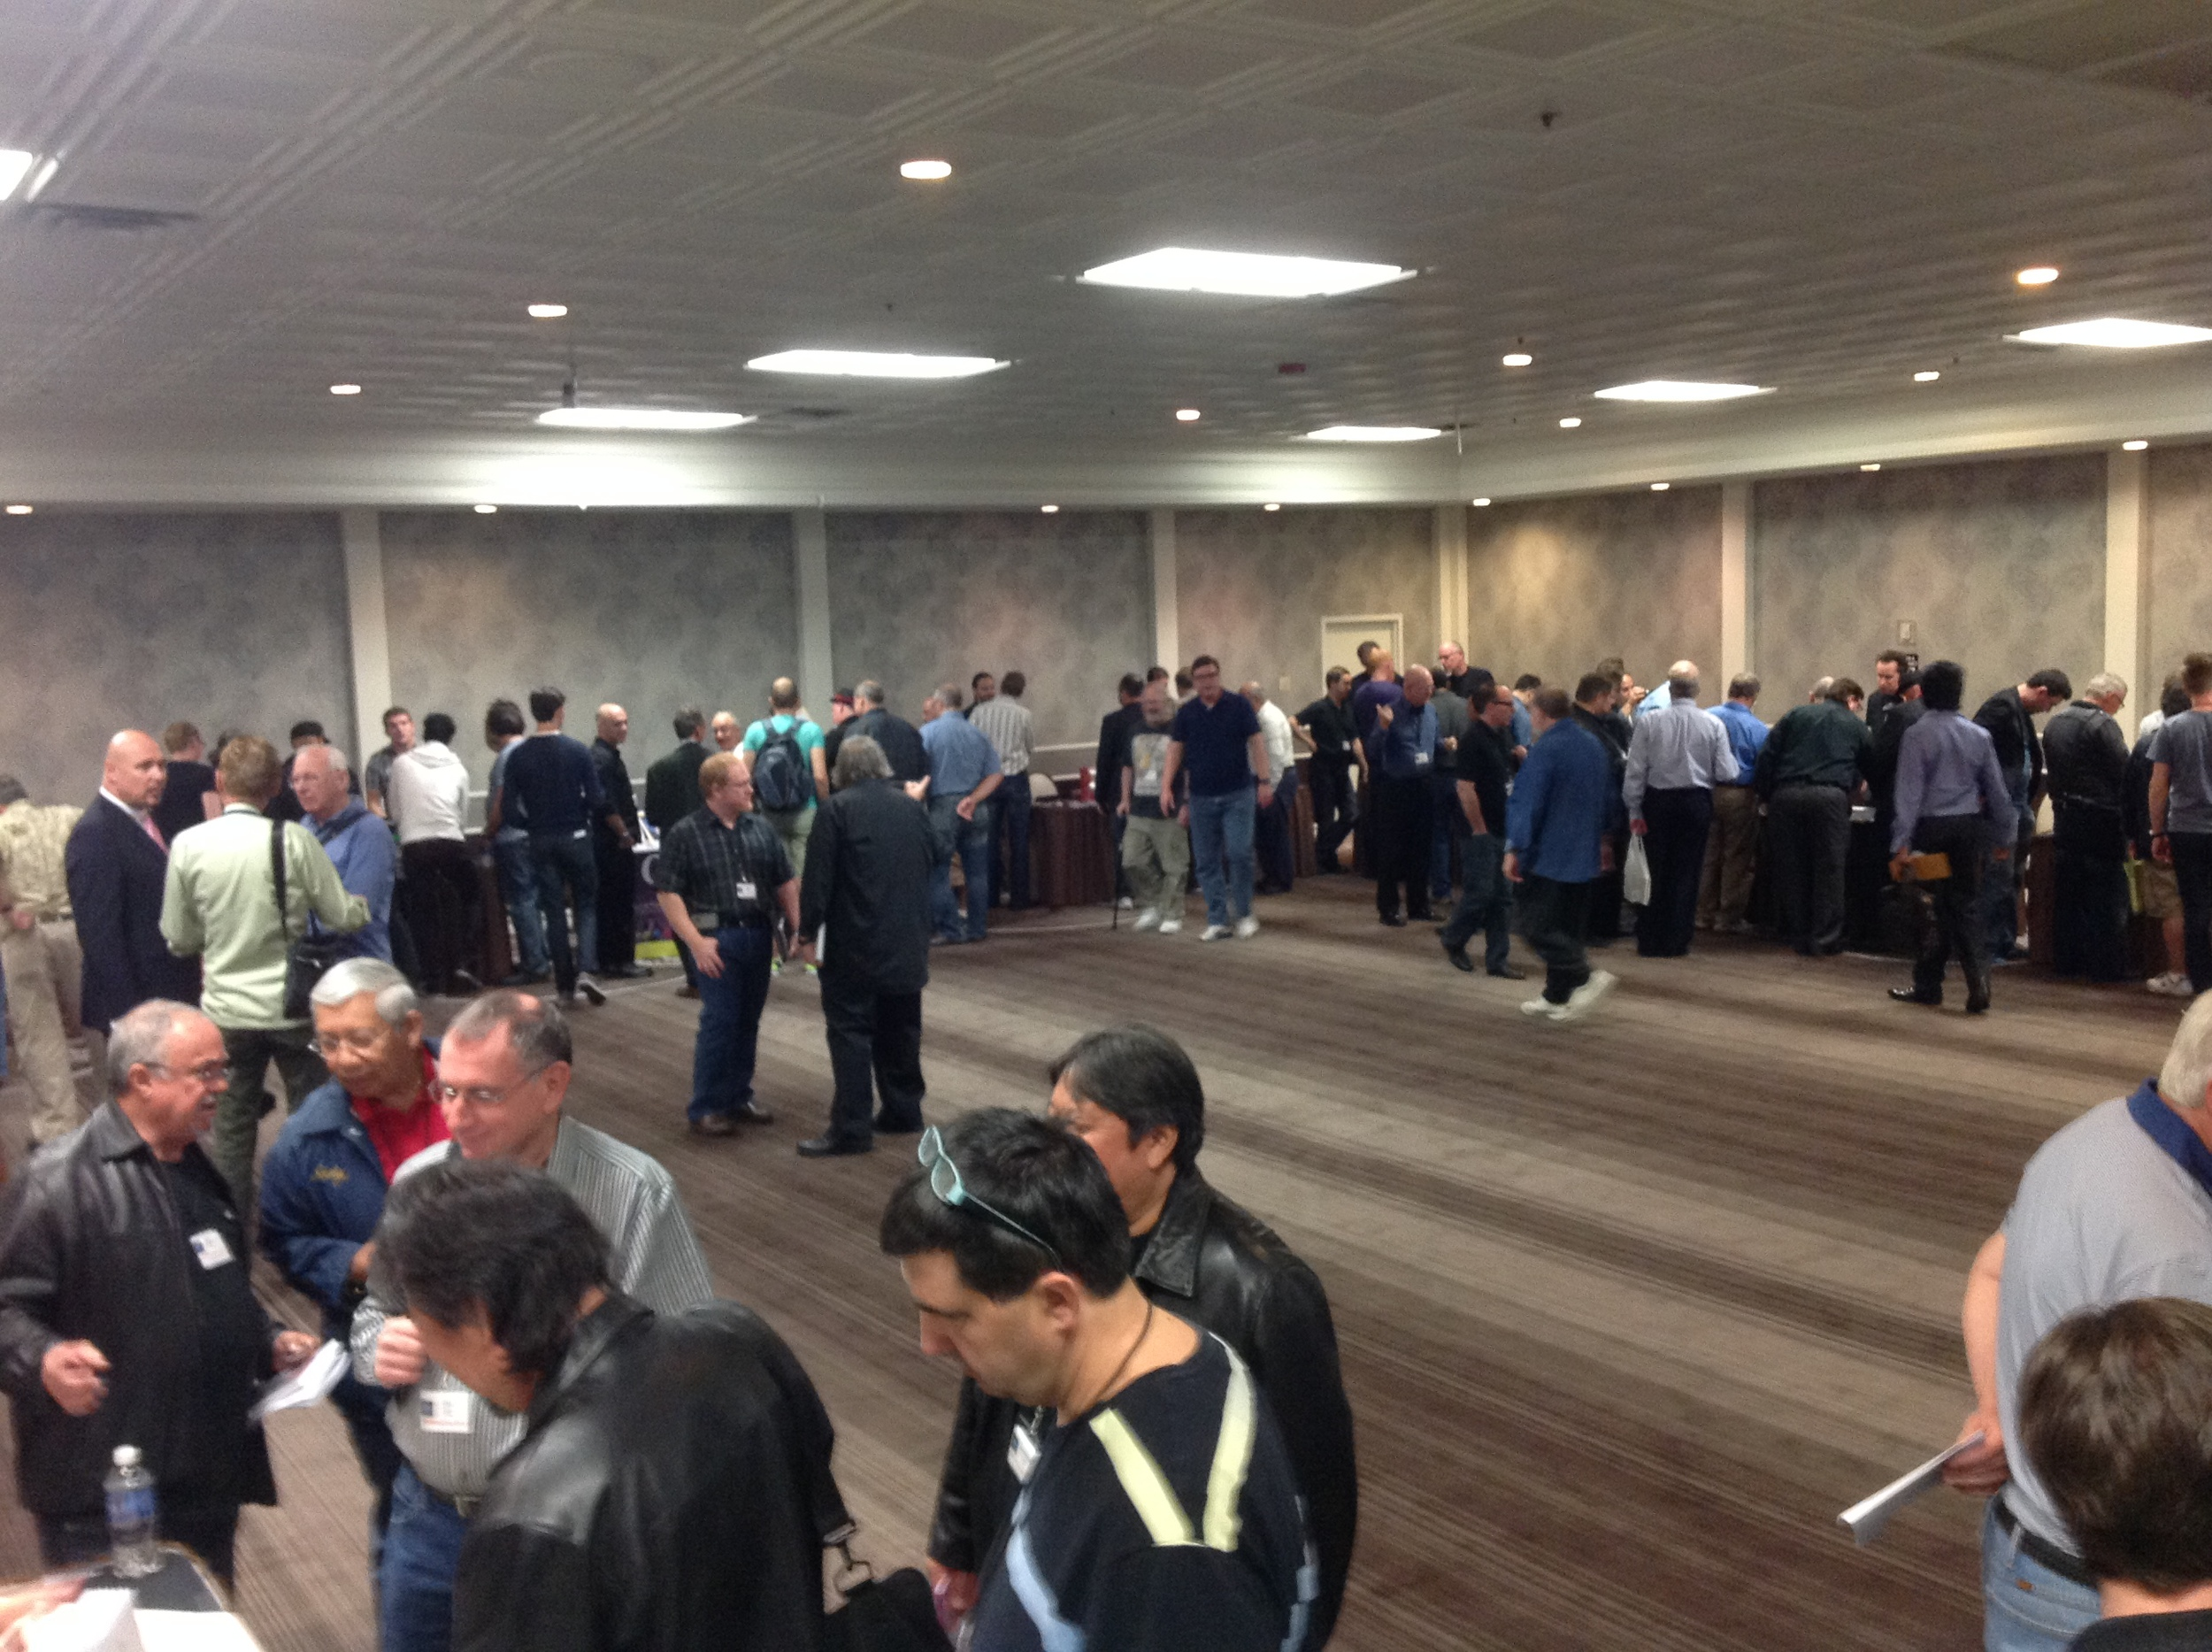 Dealers' Room early Sunday Afternoon